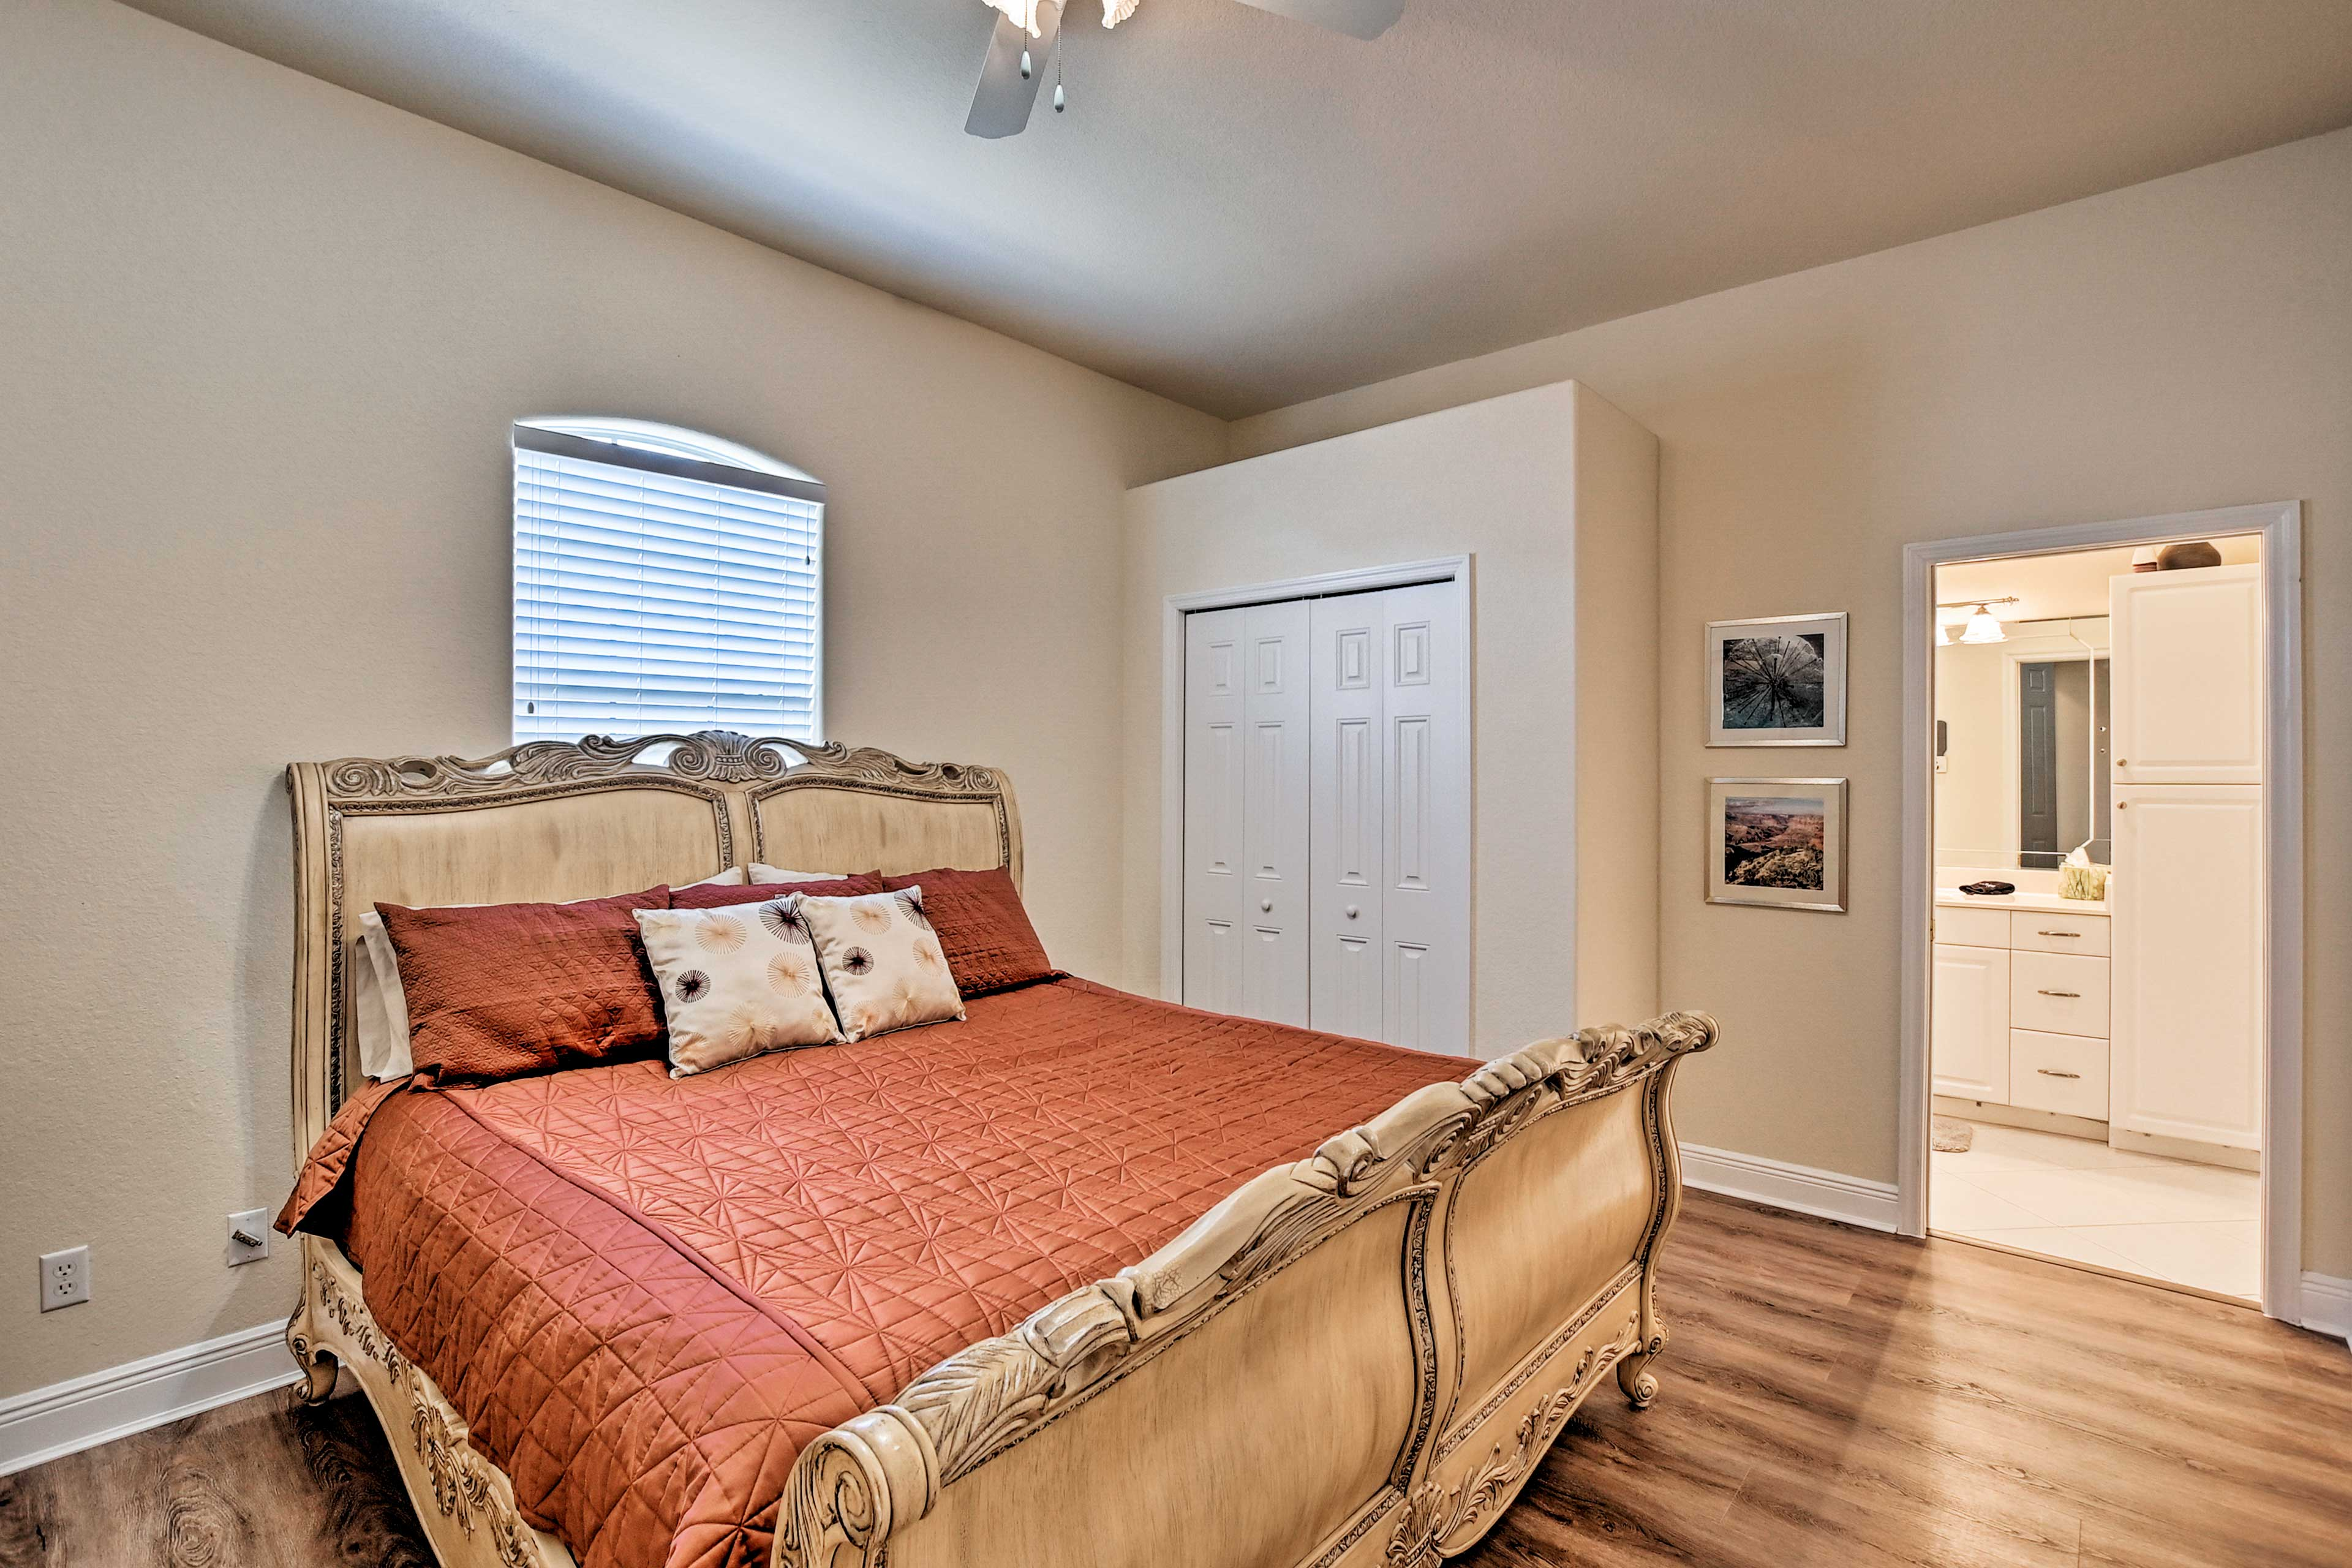 Climb under the covers of the king bed in the second bedroom.